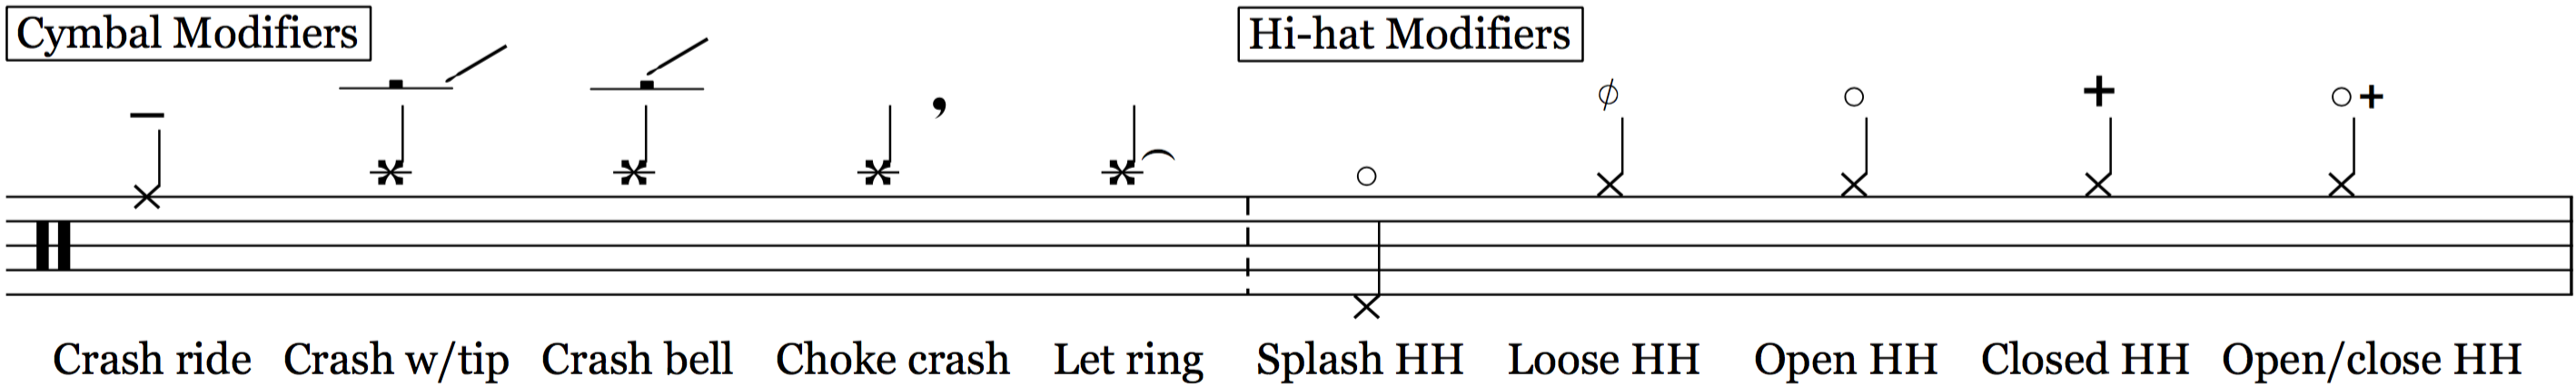 drum-key_cymbal-modifiers